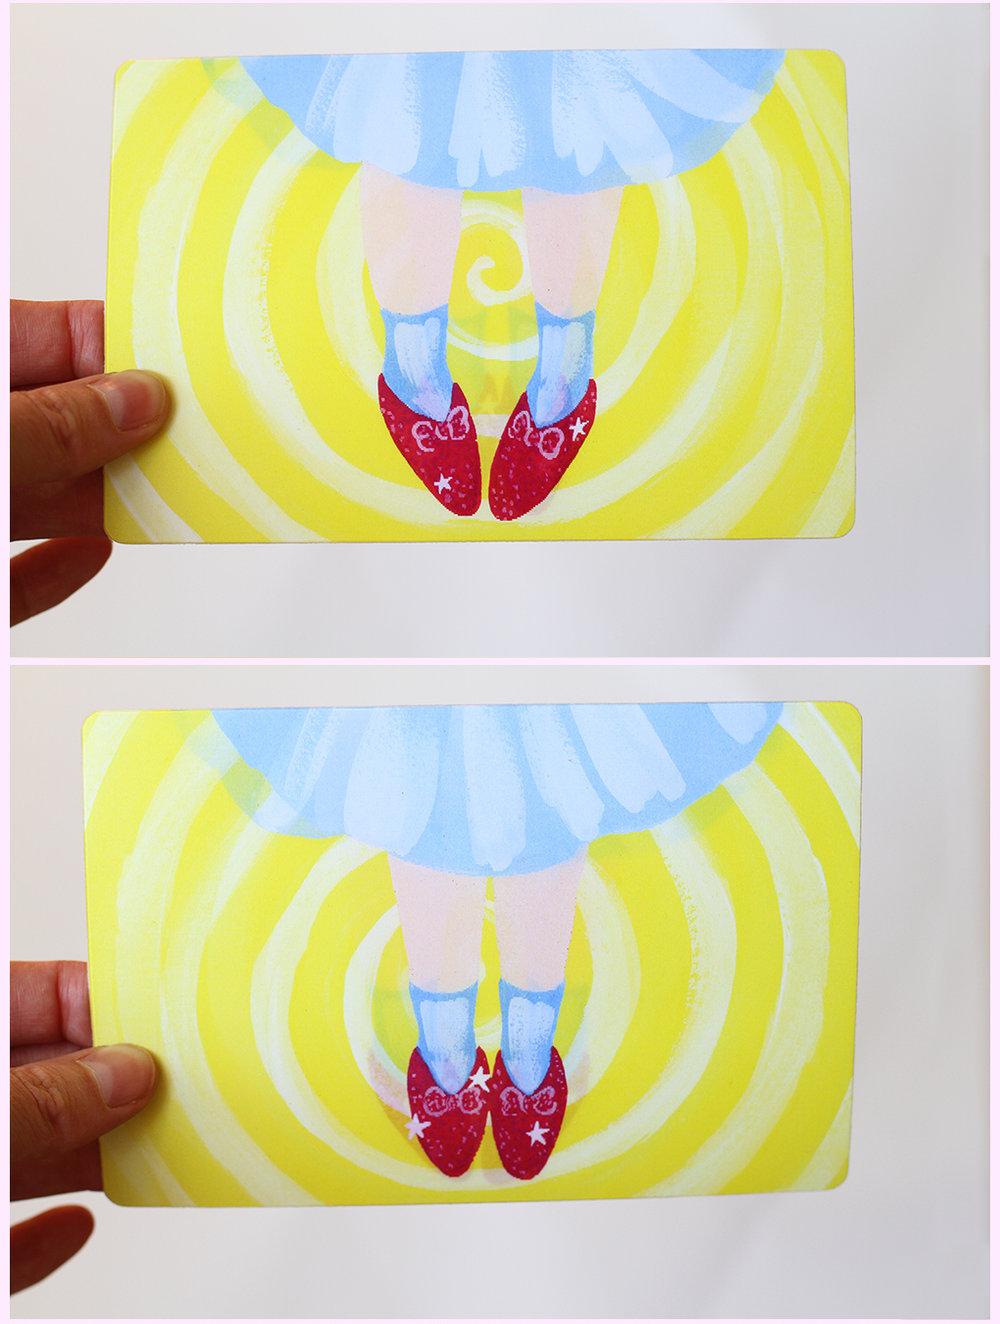 magical lenticular art print - image changes based on viewing angle, 2017